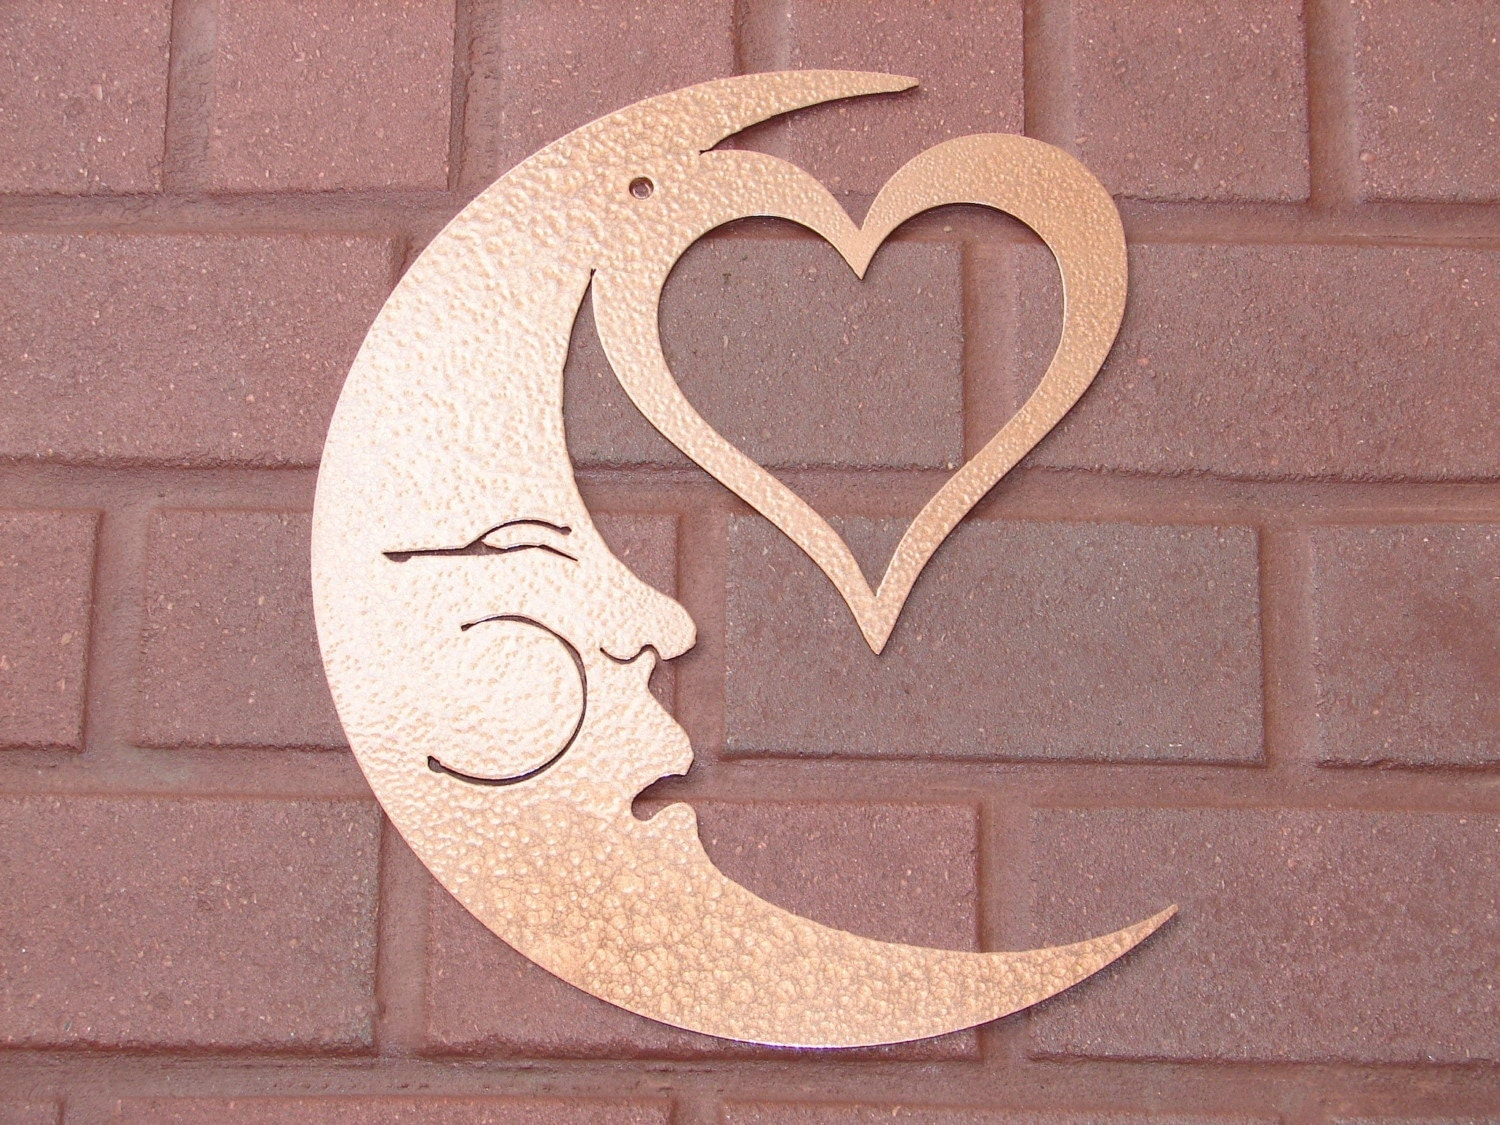 Moon Heart Face Metal Wall Art Home Decor Garden Patio